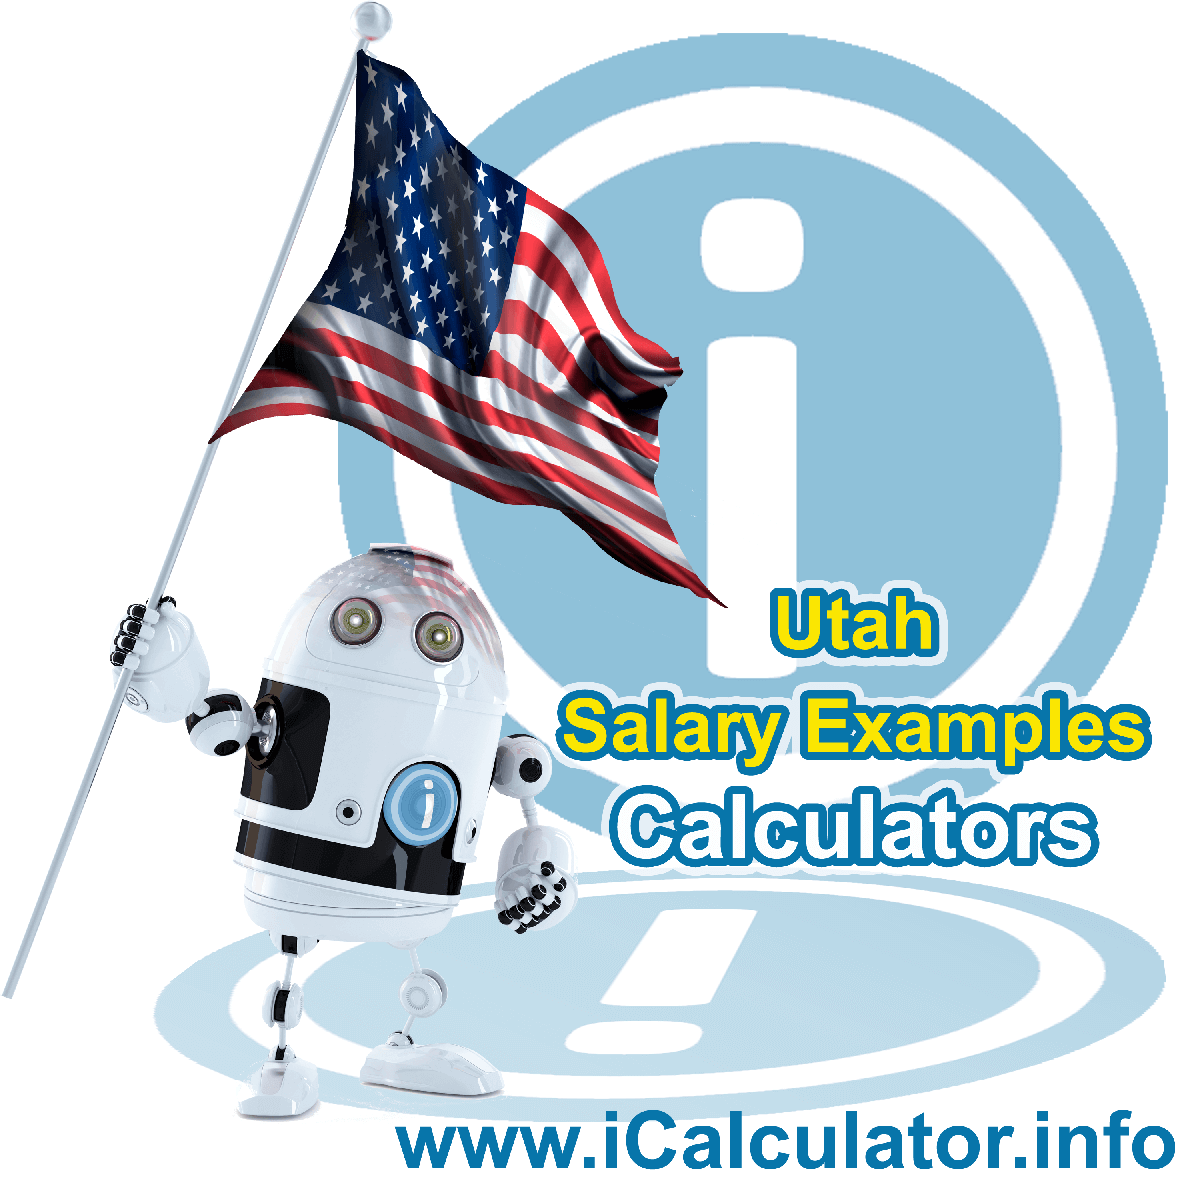 Utah Salary Example for $115,000.00 in 2020 | iCalculator | $115,000.00 salary example for employee and employer paying Utah State tincome taxes. Detailed salary after tax calculation including Utah State Tax, Federal State Tax, Medicare Deductions, Social Security, Capital Gains and other income tax and salary deductions complete with supporting Utah state tax tables